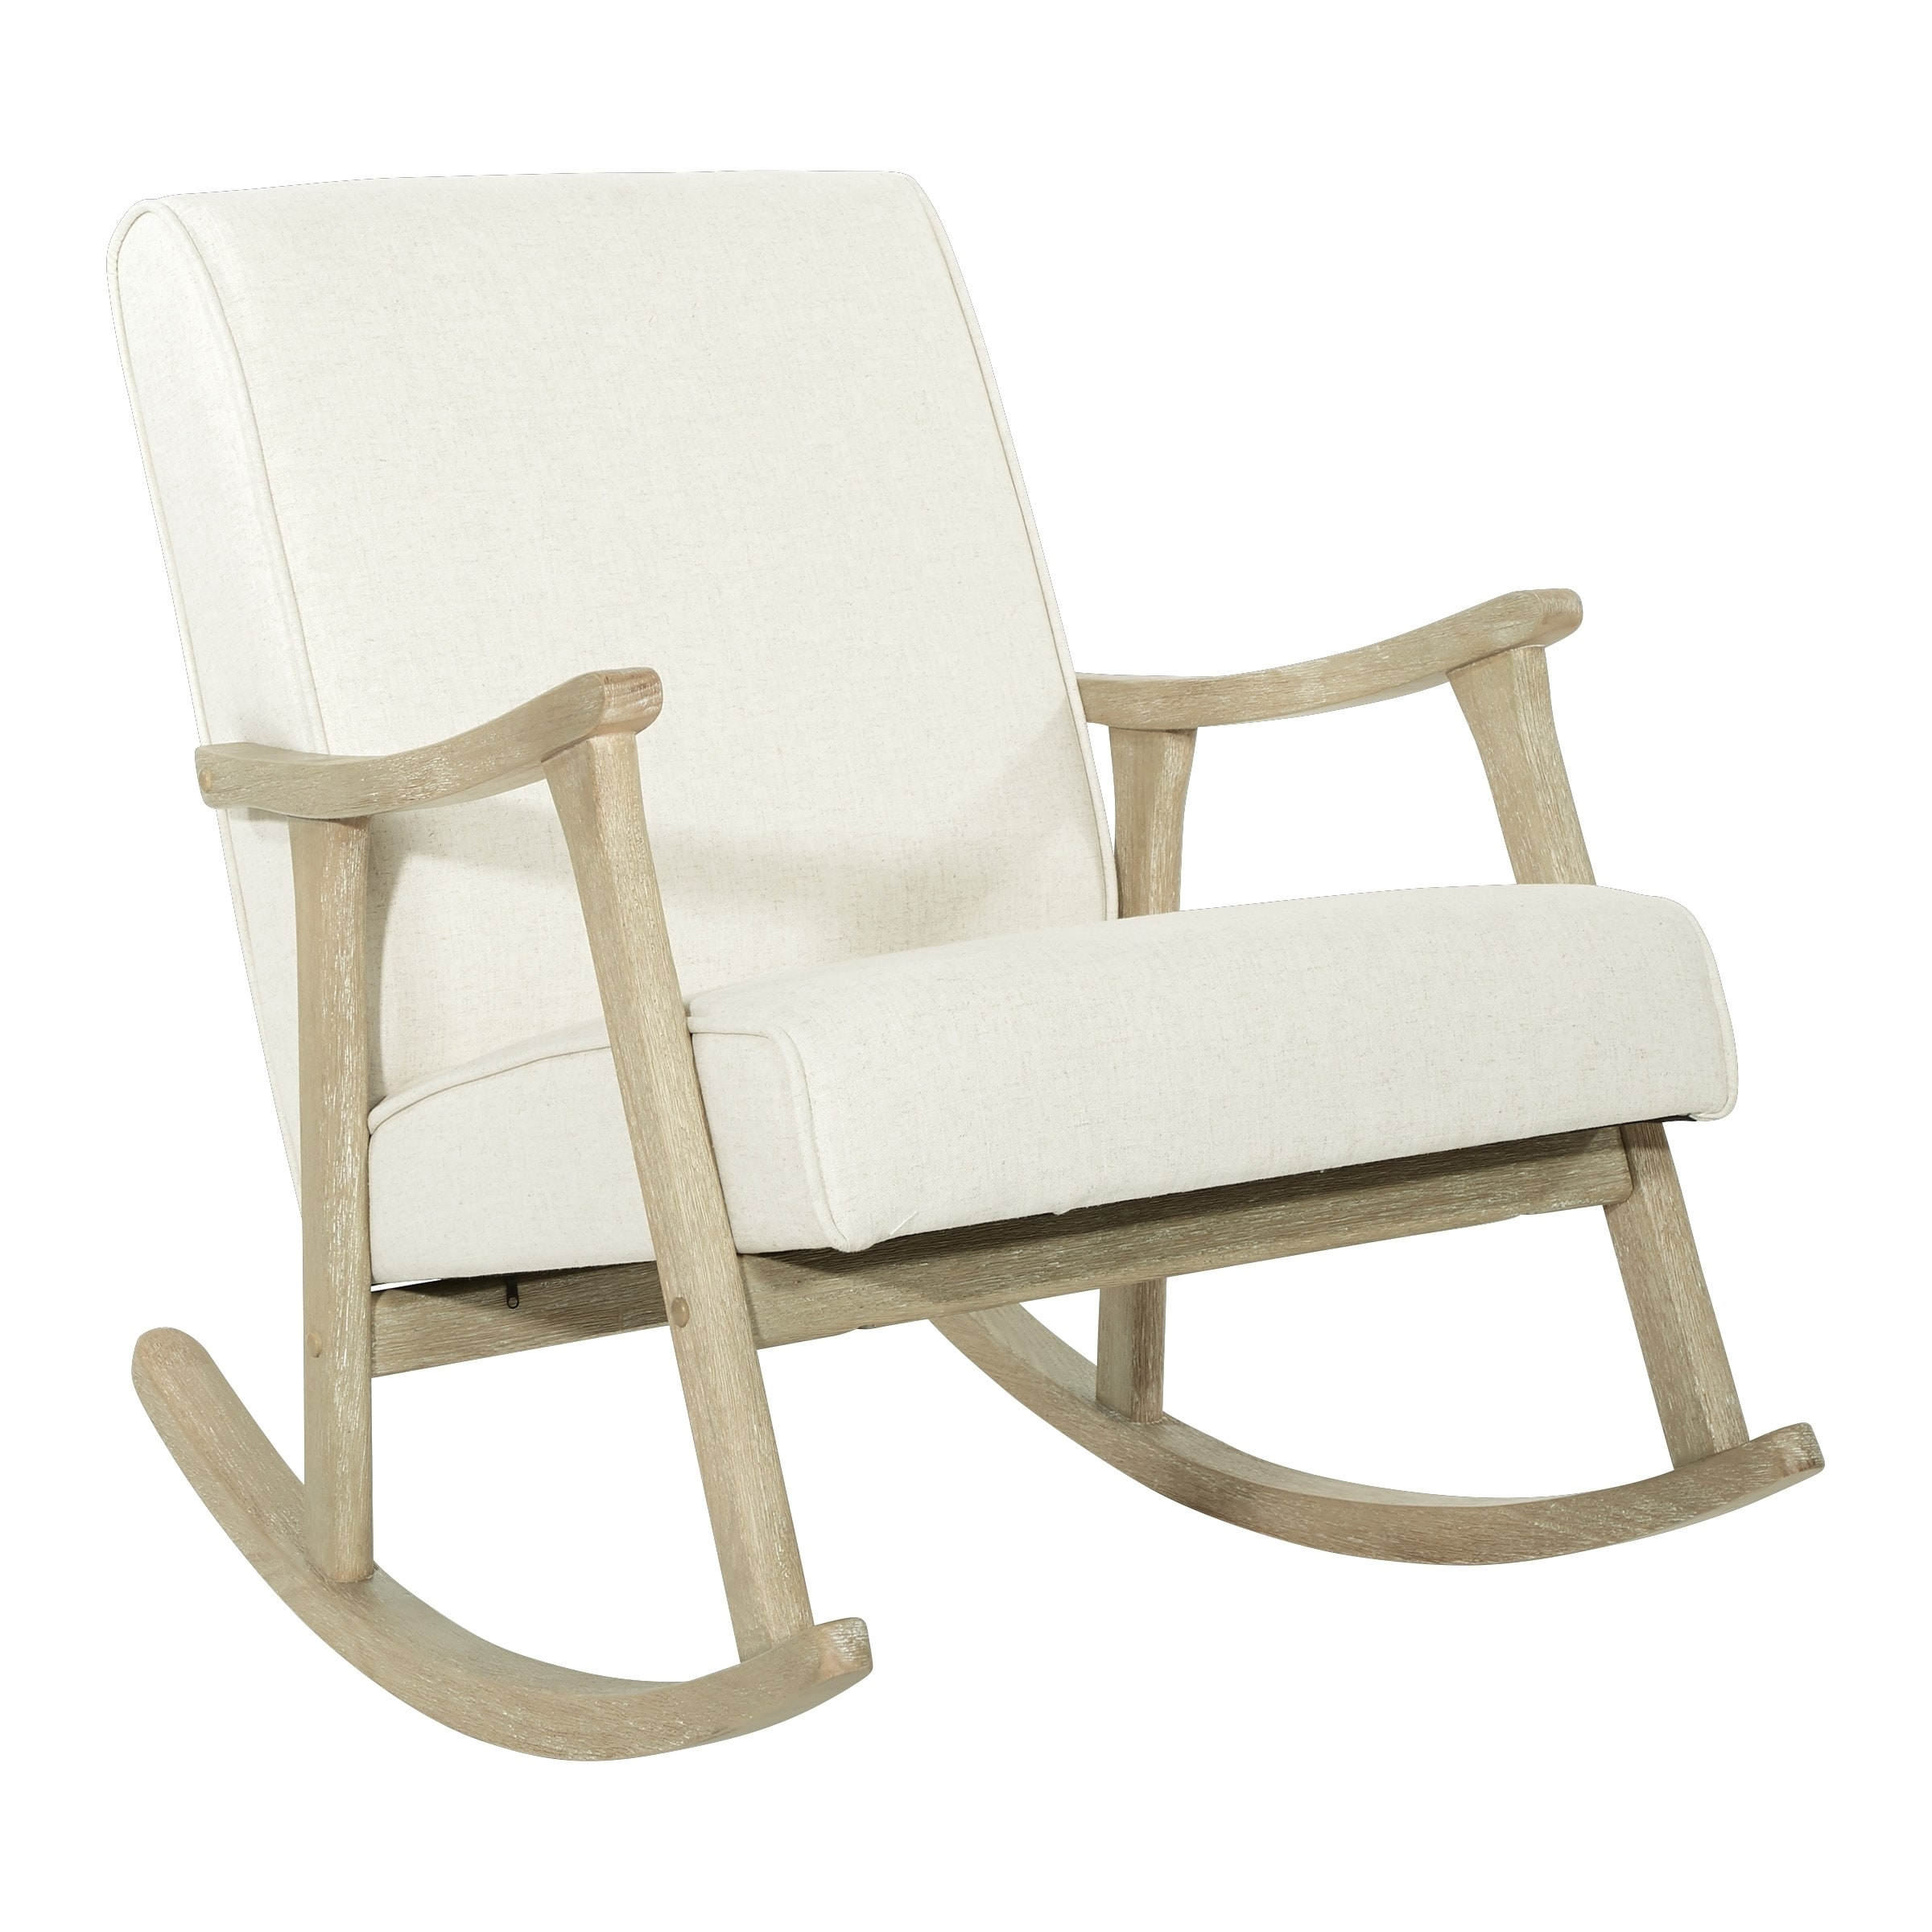 Popular Photo of Rocking Chairs In Linen Fabric With Brushed Finish Base